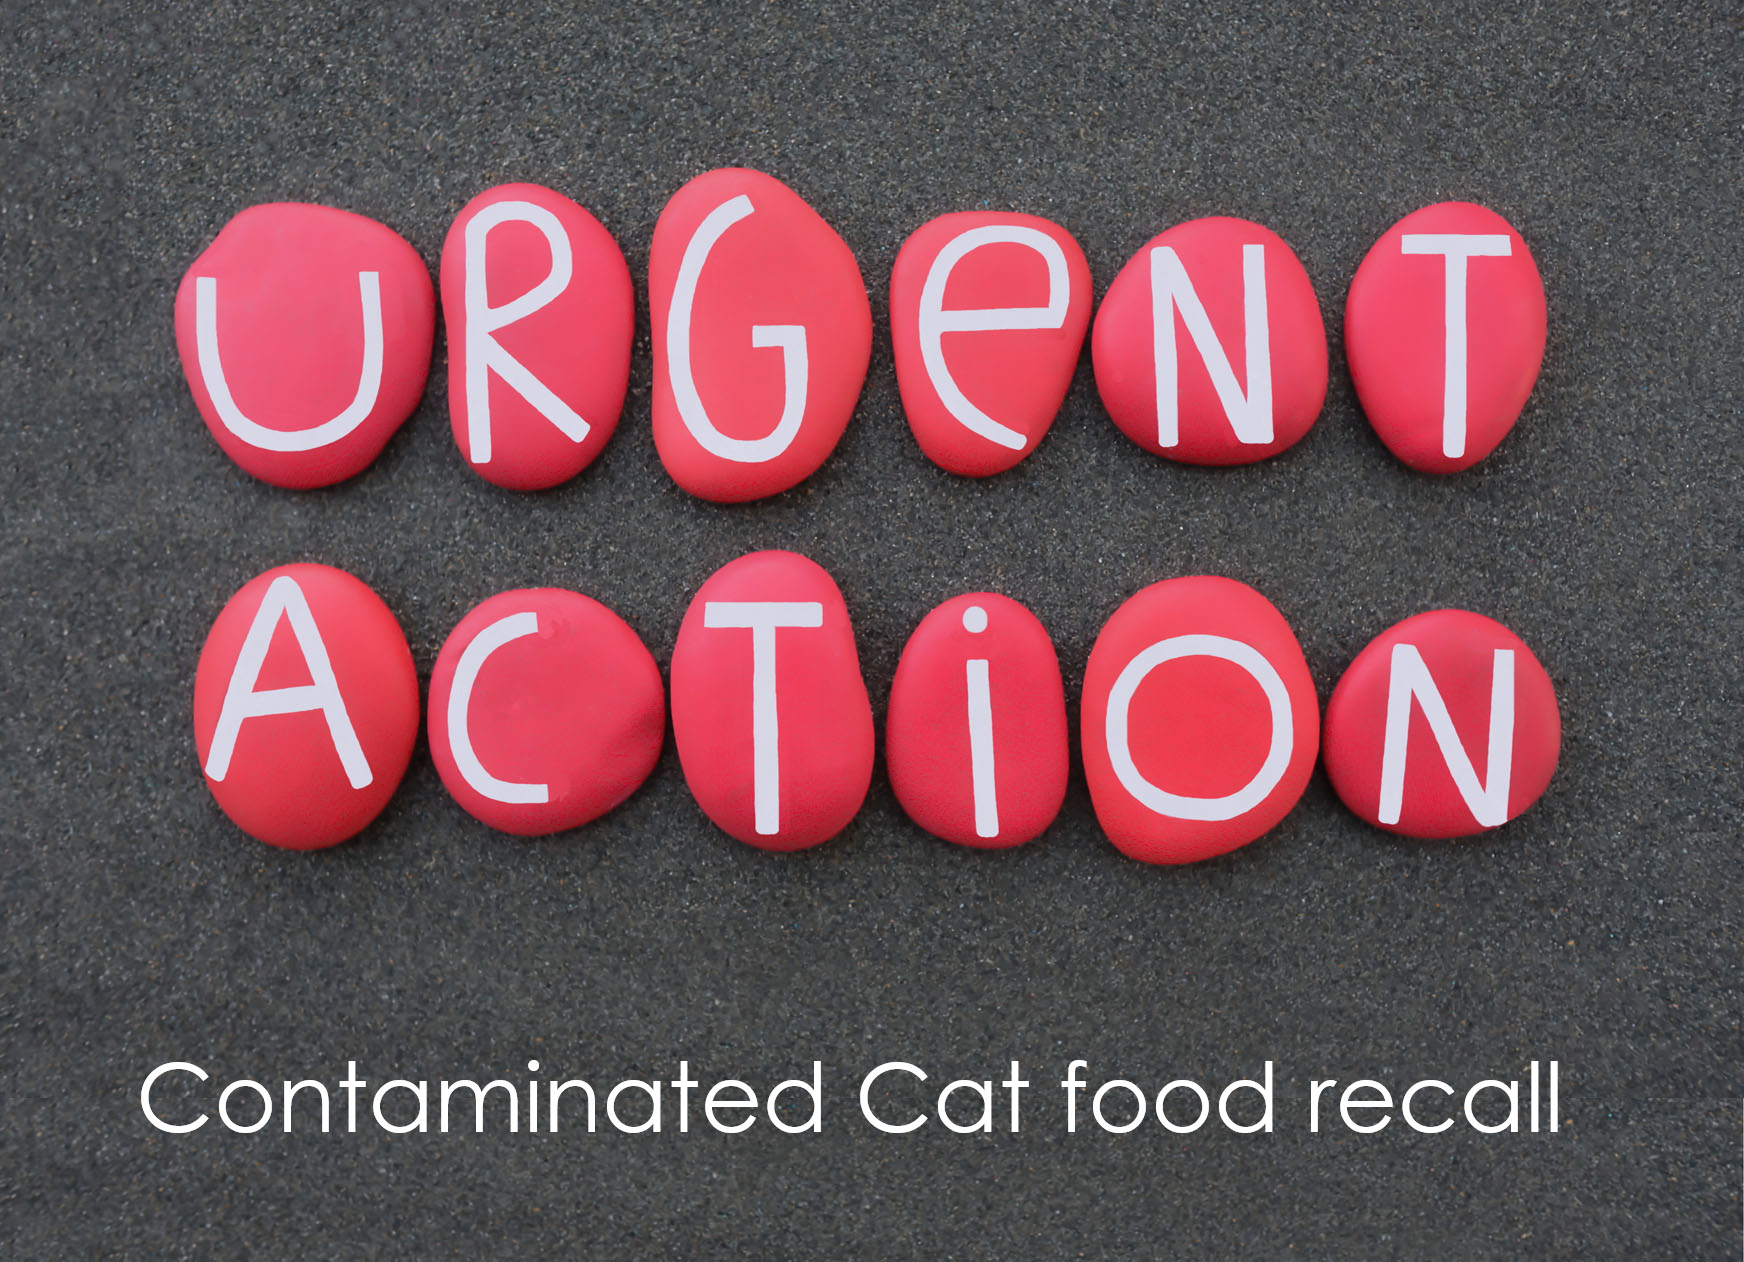 Food Standards Agency (FSA) have issued urgent advice to Cat Owners